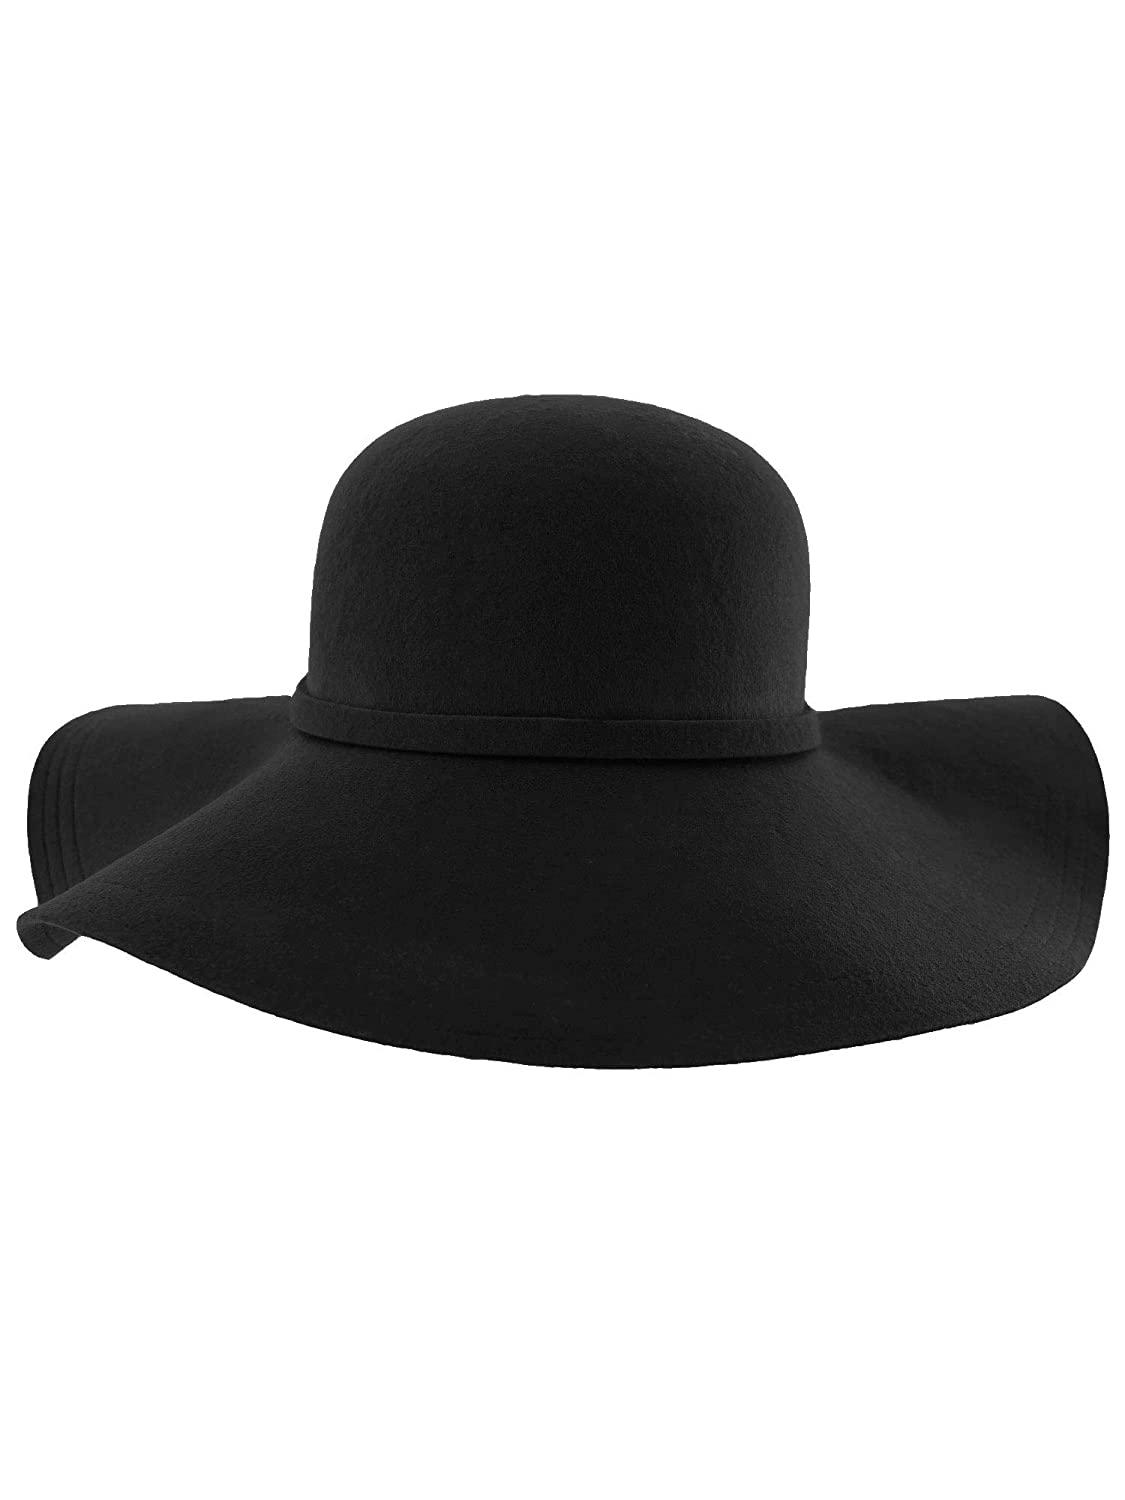 899e0aa1d5f Luxury Divas Black Wide Brimmed Wool Floppy Hat at Amazon Women s Clothing  store  Sun Hats